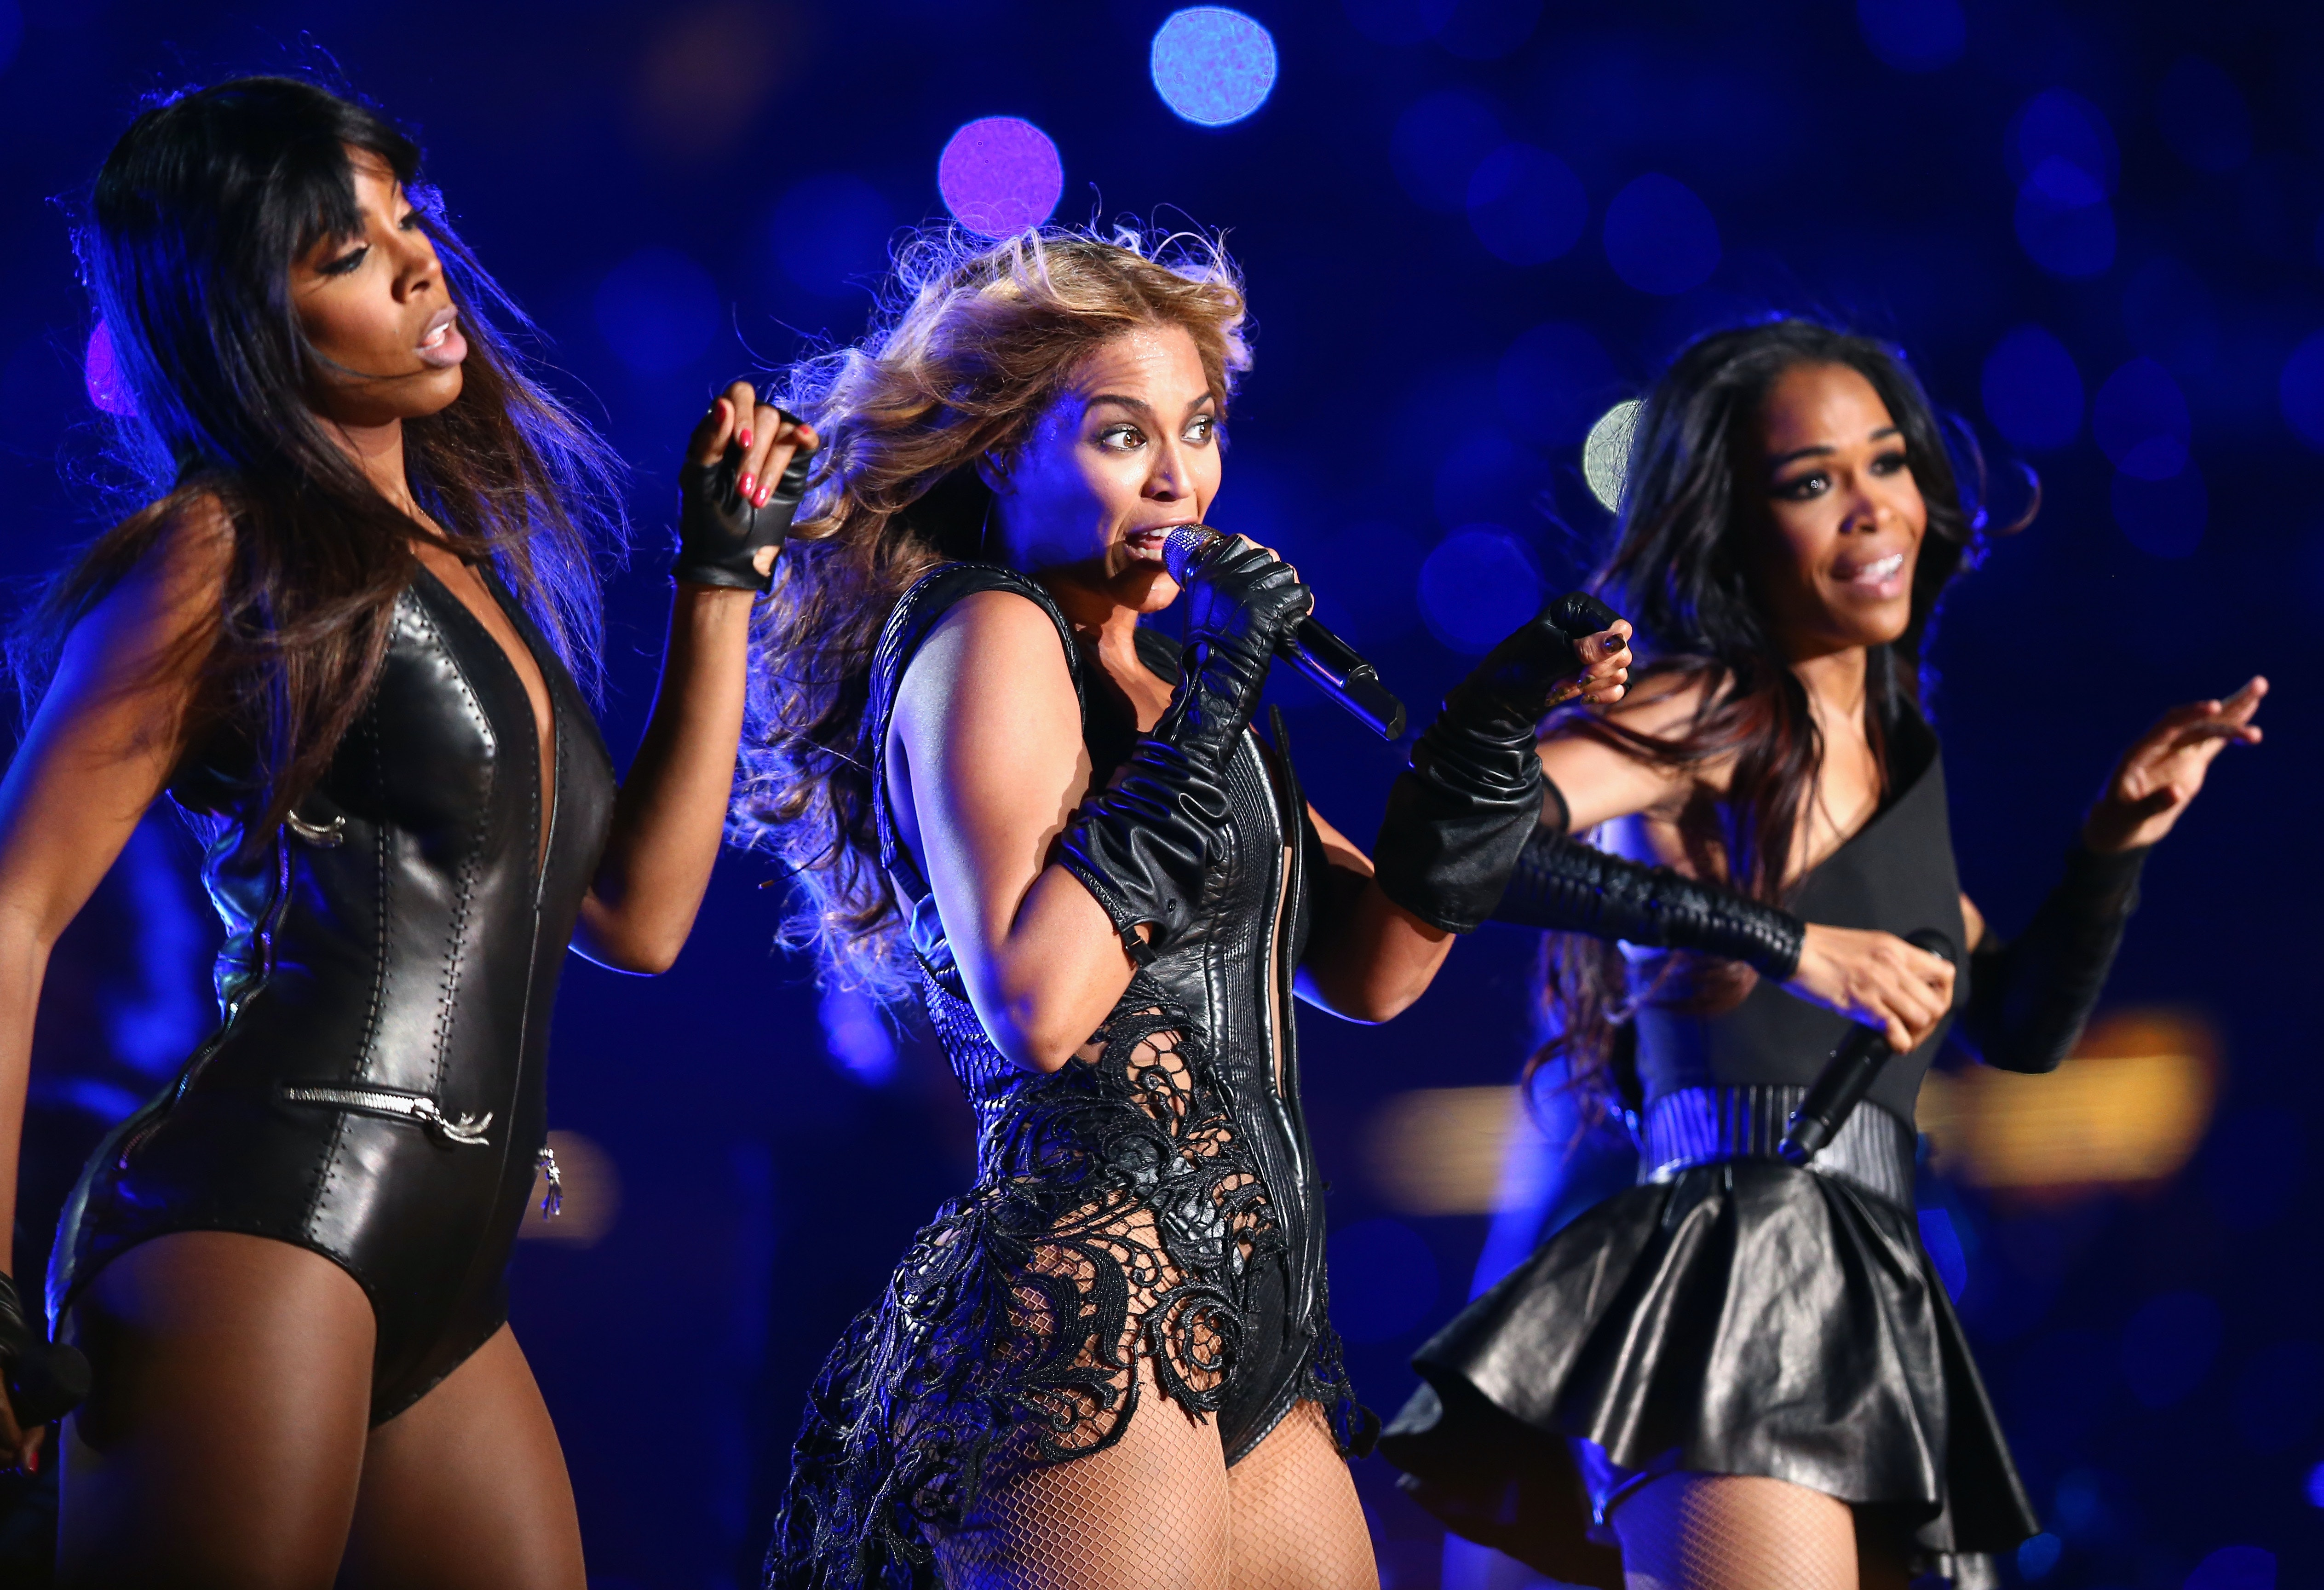 All The Clues That Hint Towards A Destiny's Child Coachella Reunion